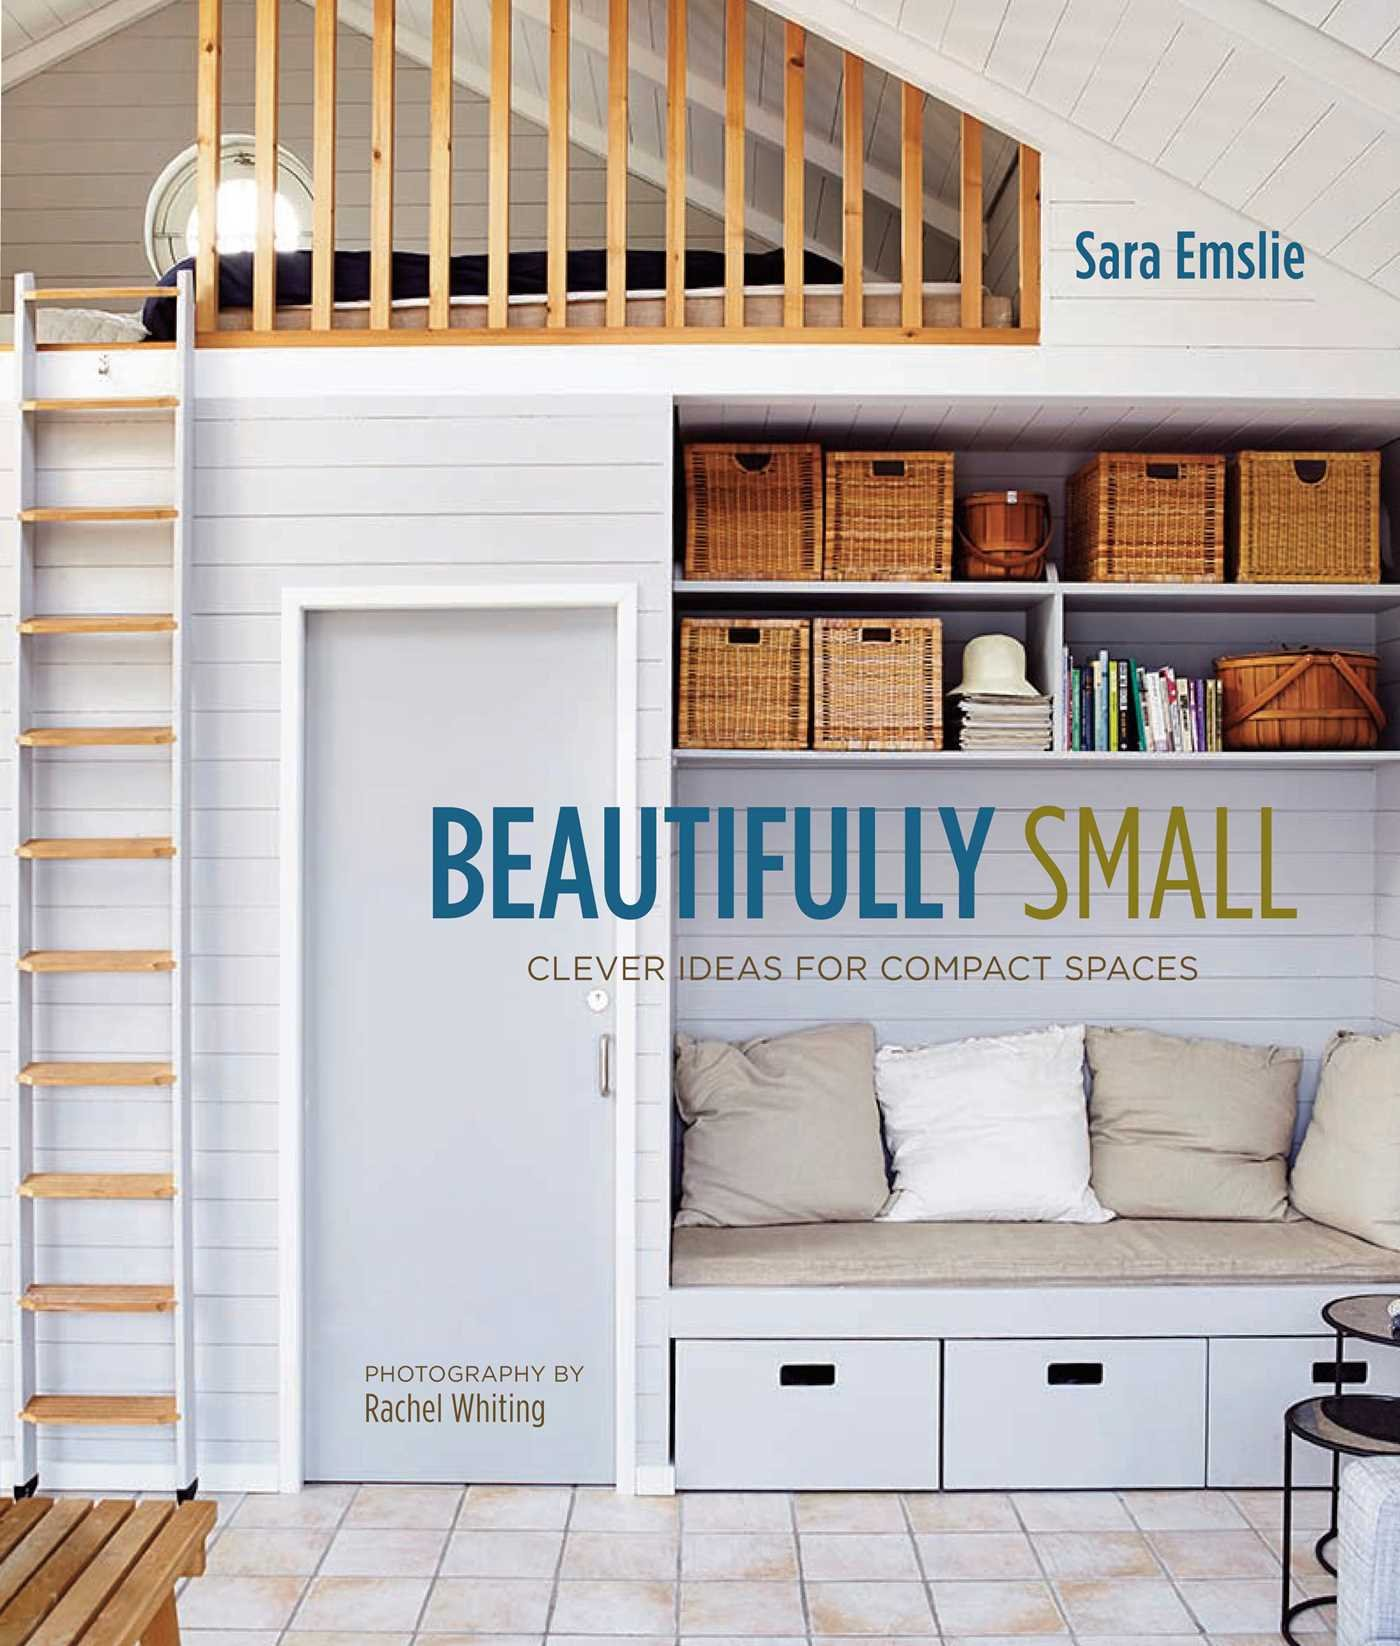 Beautifully Small: Clever Ideas for Compact Spaces: Amazon.de: Sara ...